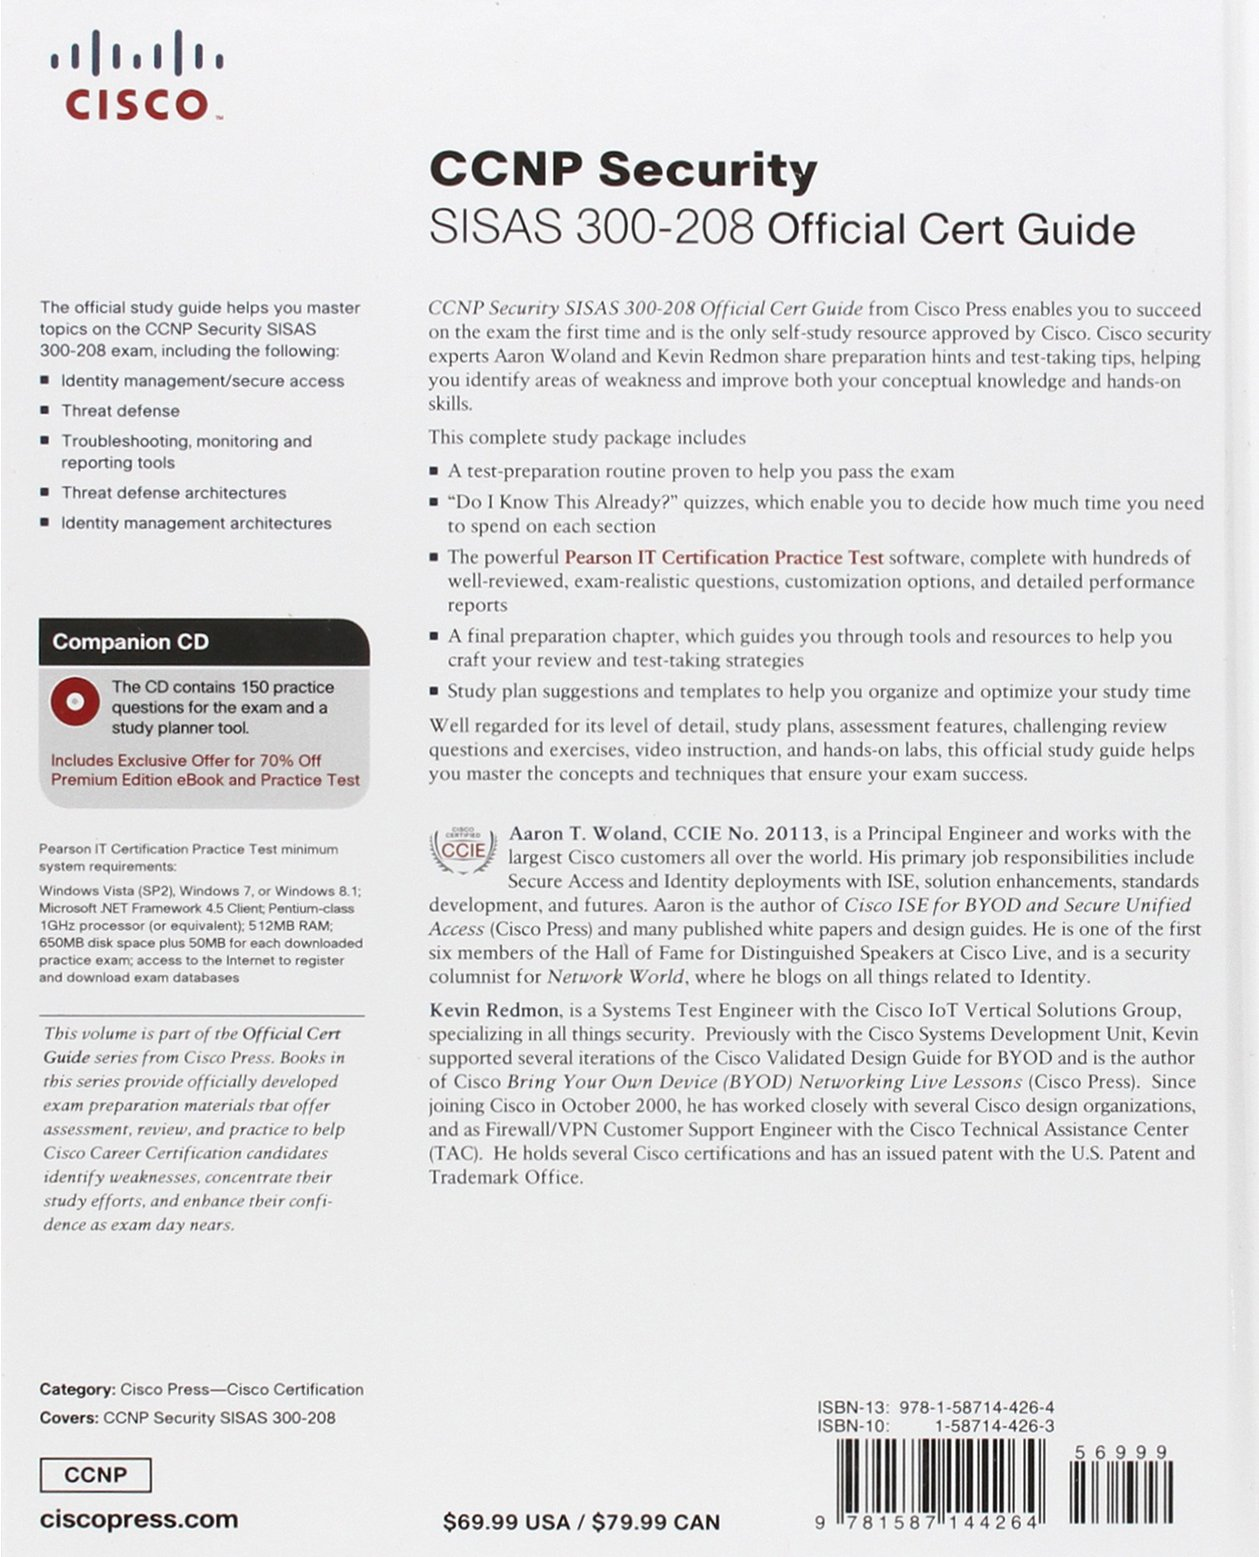 Ccnp Security Sisas 300-208 Official Cert Guide Pdf